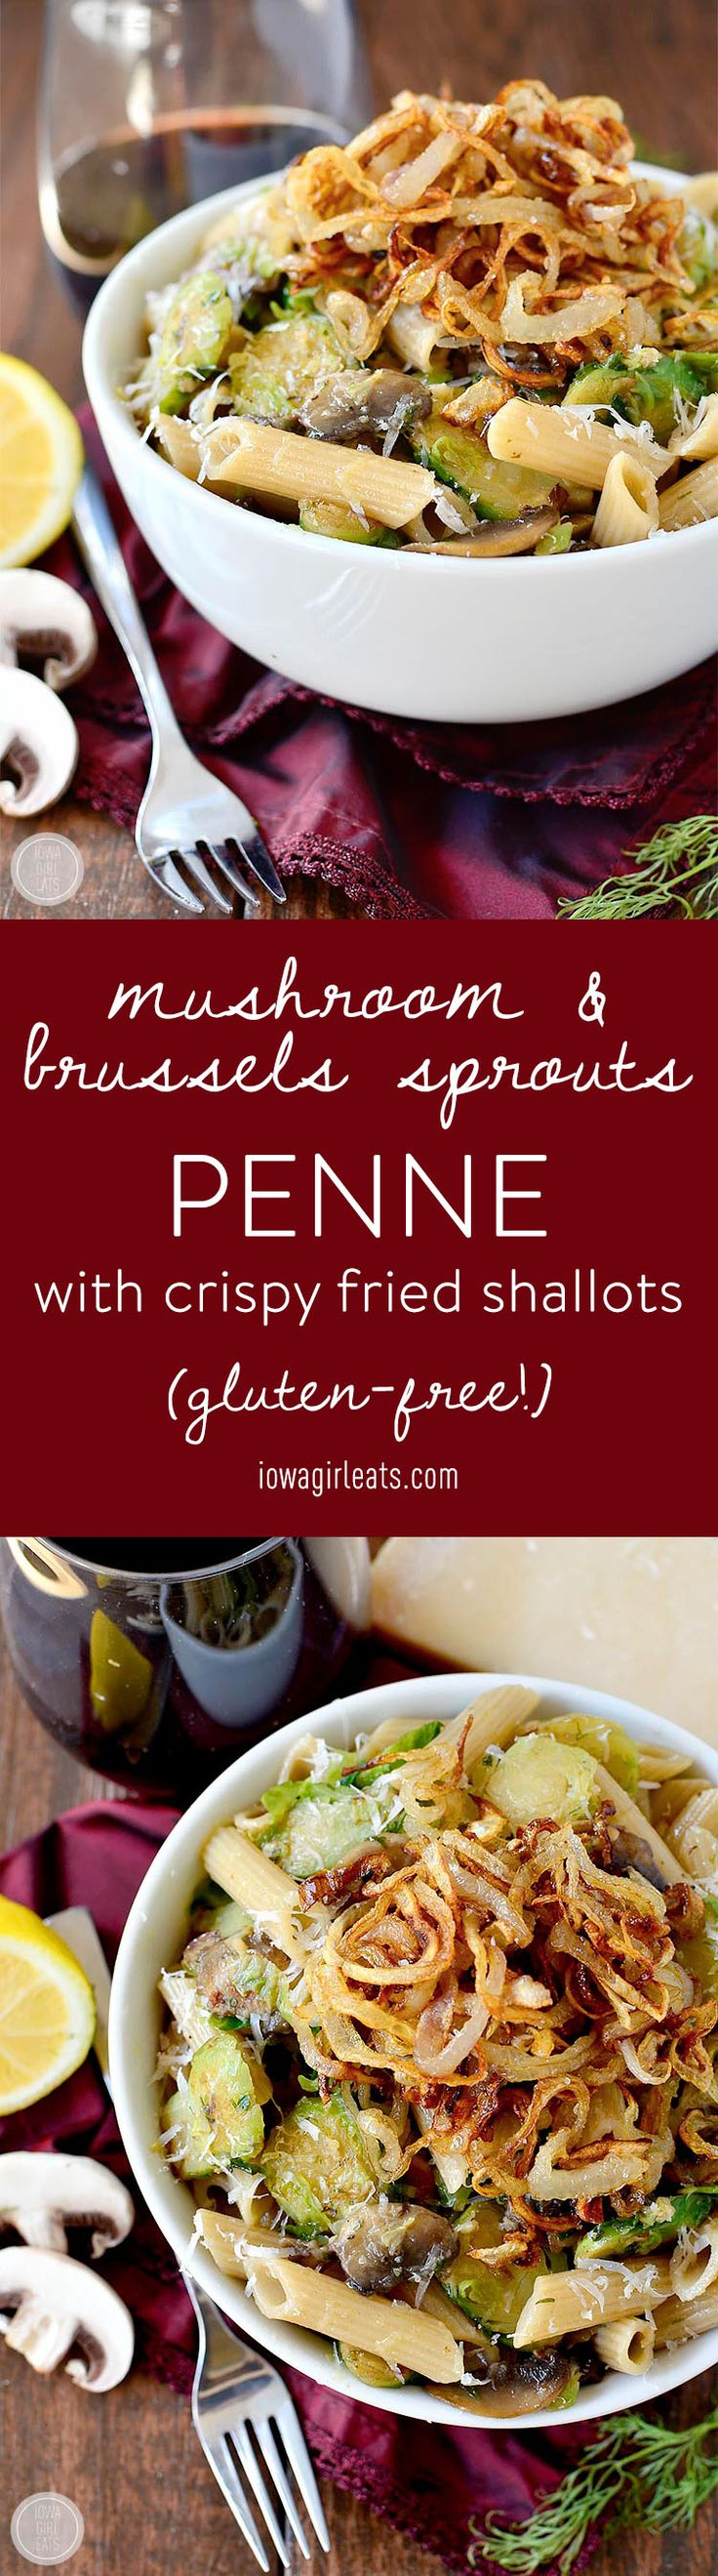 Mushroom+and+Brussels+Sprouts+Penne+with+Crispy+Fried+Shallots+is+a ...